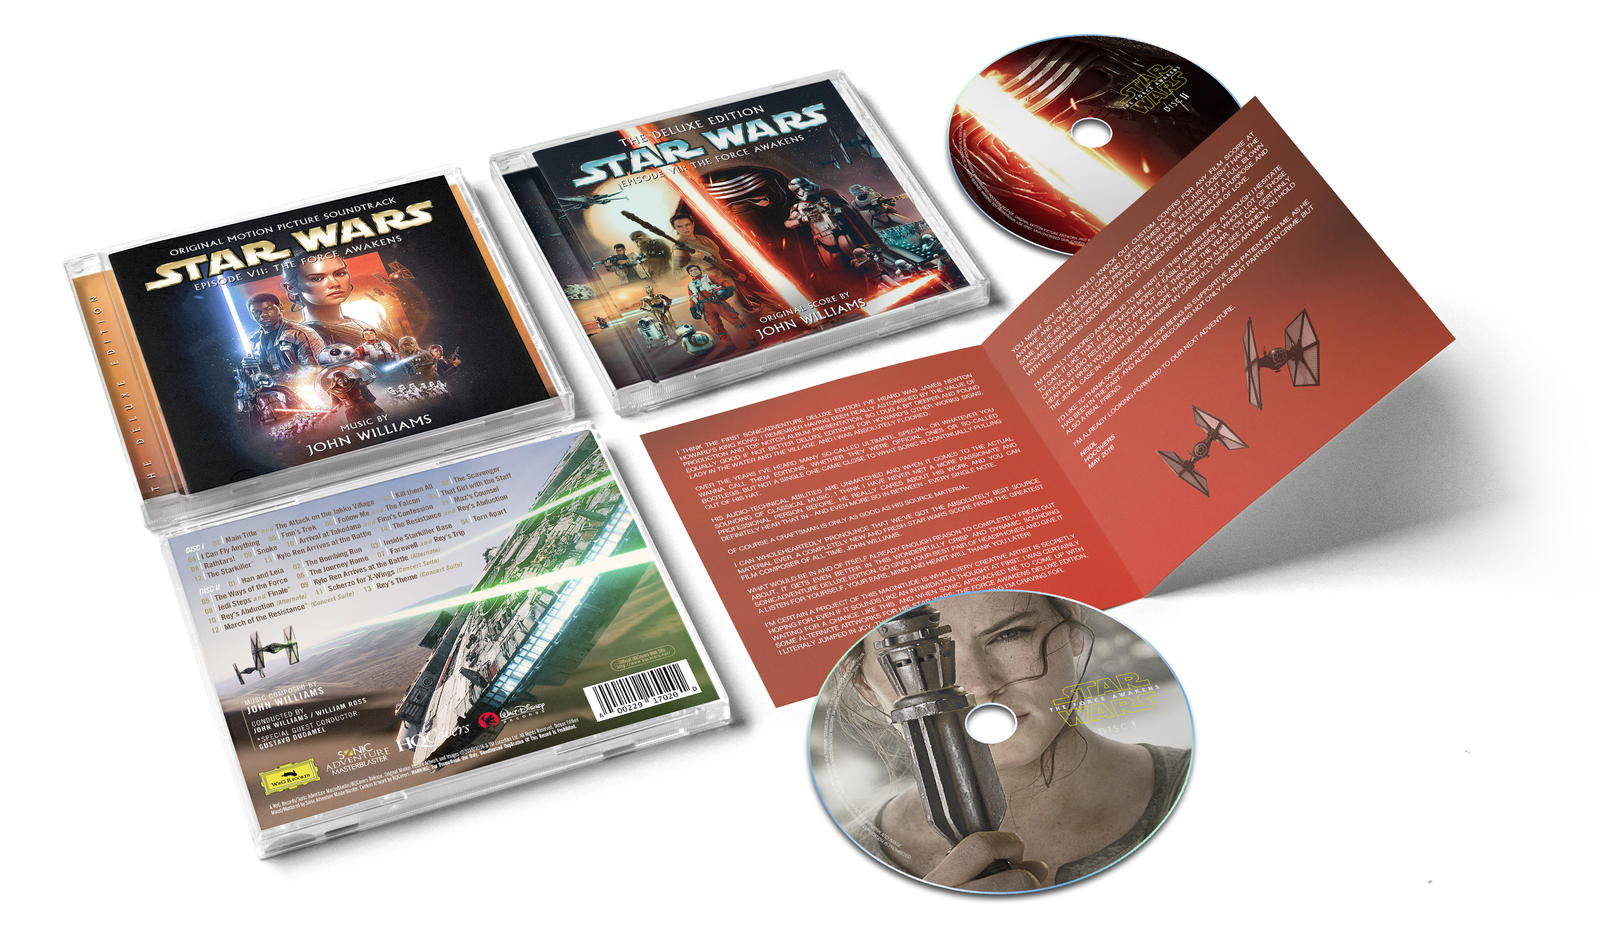 Star Wars: The Force Awakens (Deluxe Edition) #2